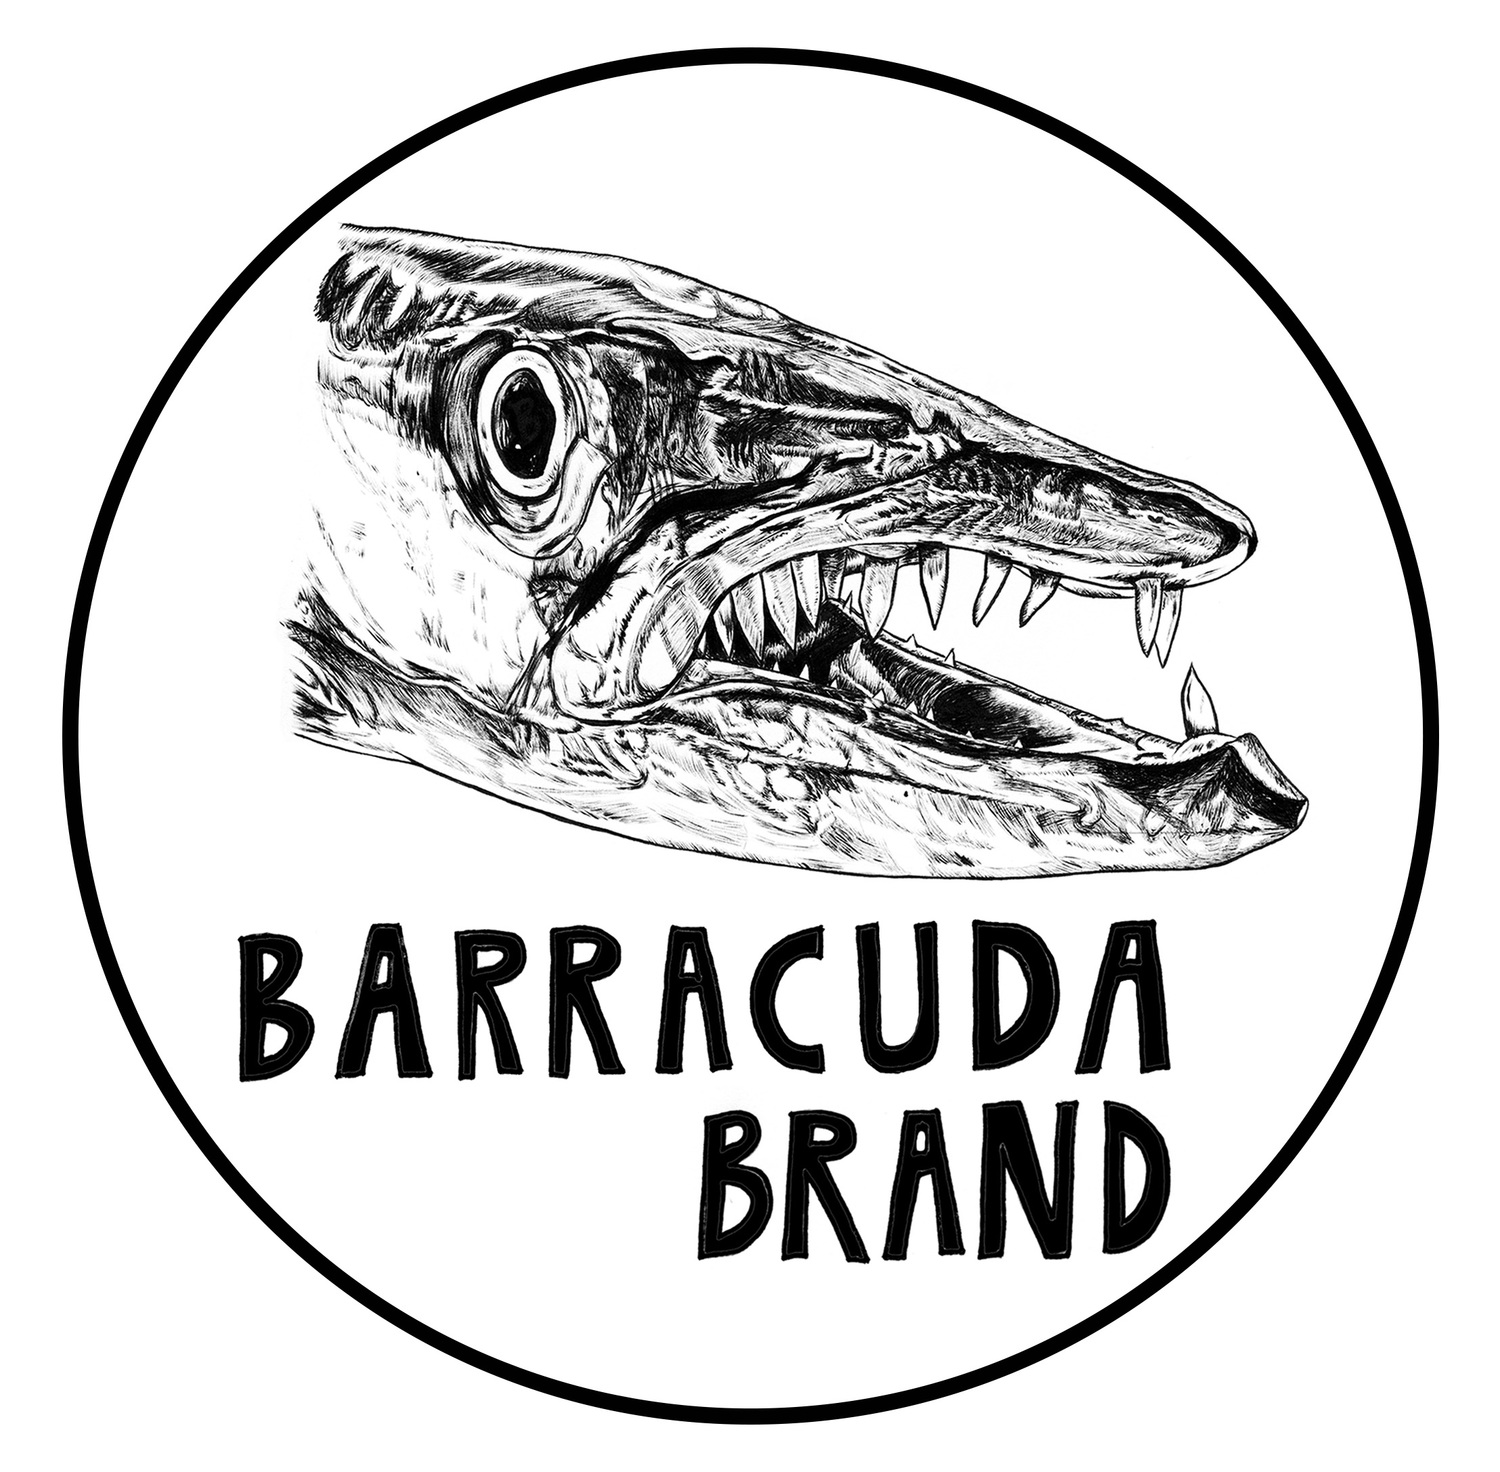 Barracuda Brand